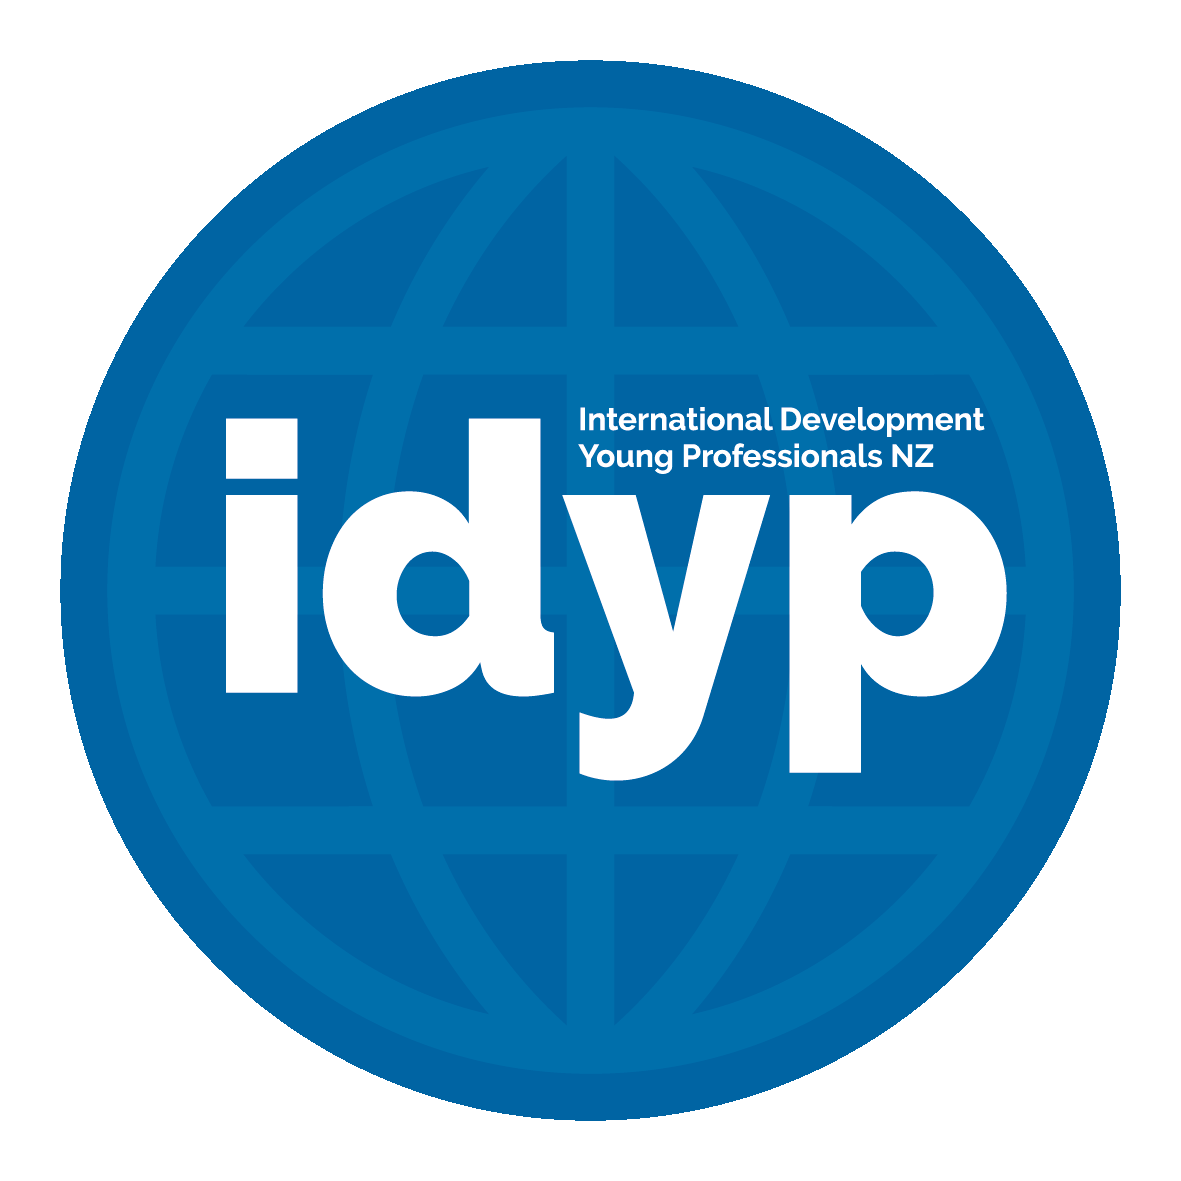 International Development Young Professionals NZ